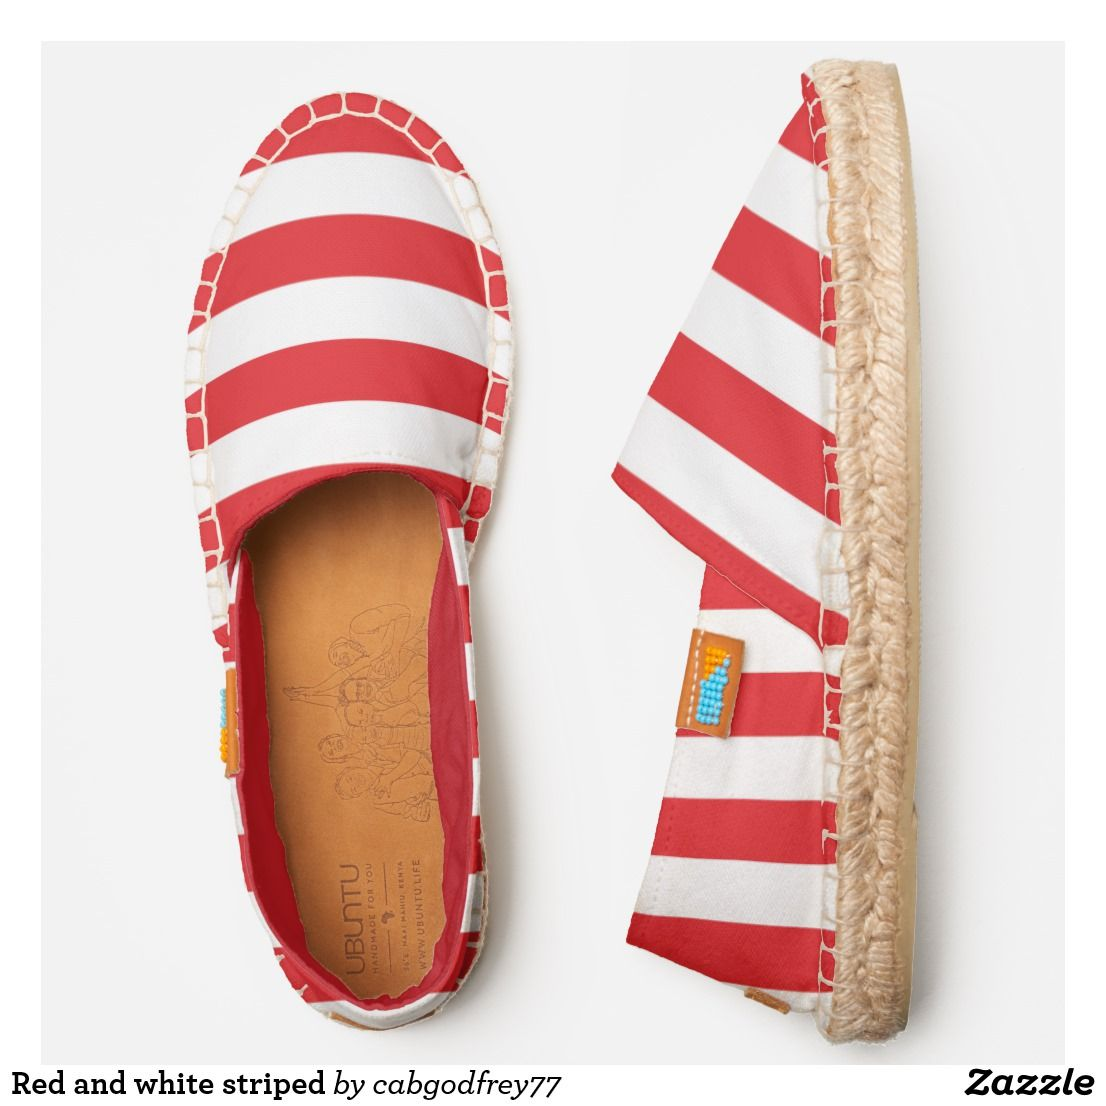 Red and white striped espadrilles